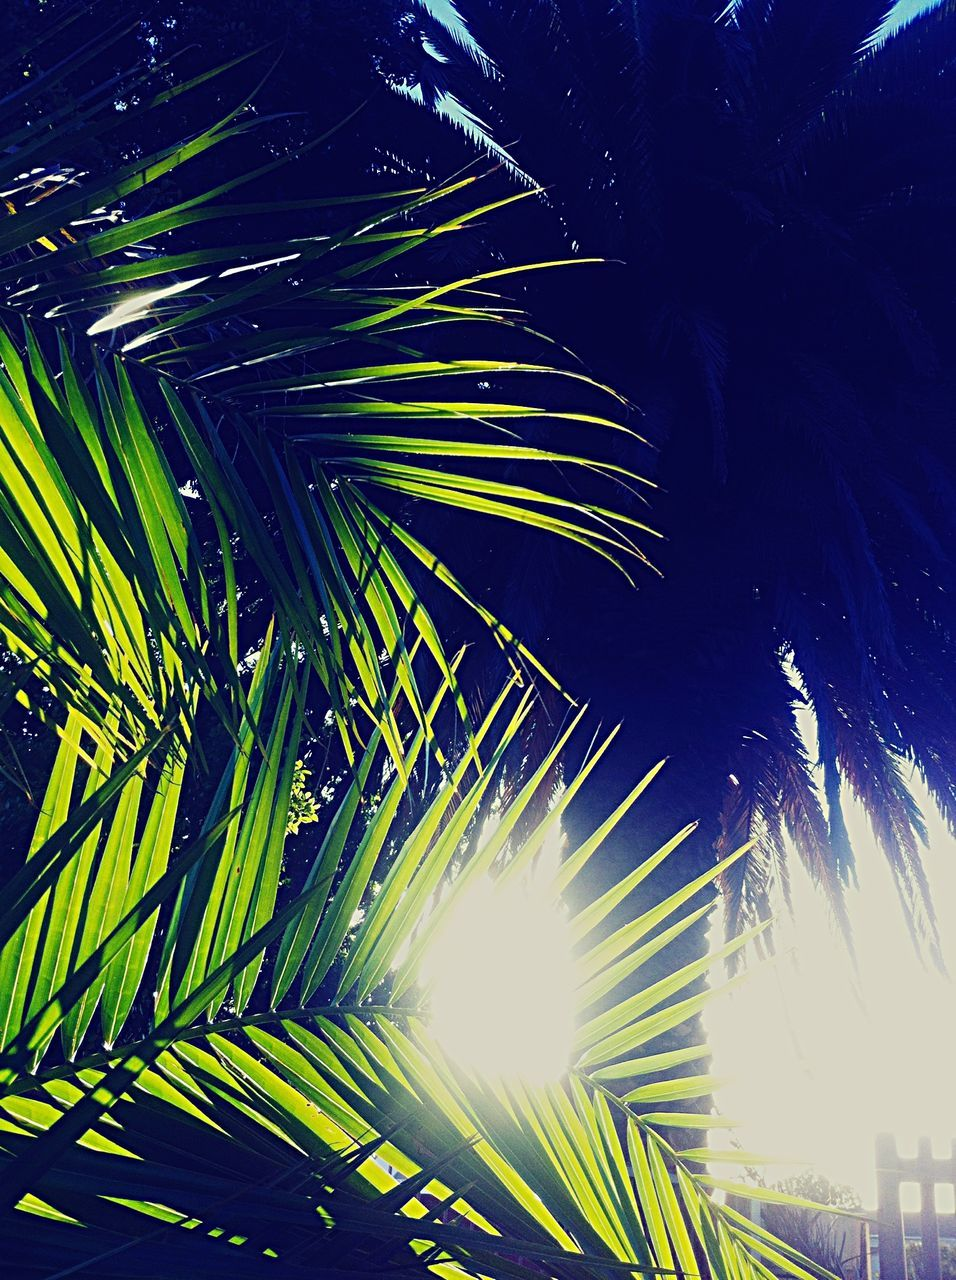 palm tree, palm leaf, low angle view, growth, tree, no people, green color, frond, outdoors, leaf, nature, beauty in nature, day, close-up, sky